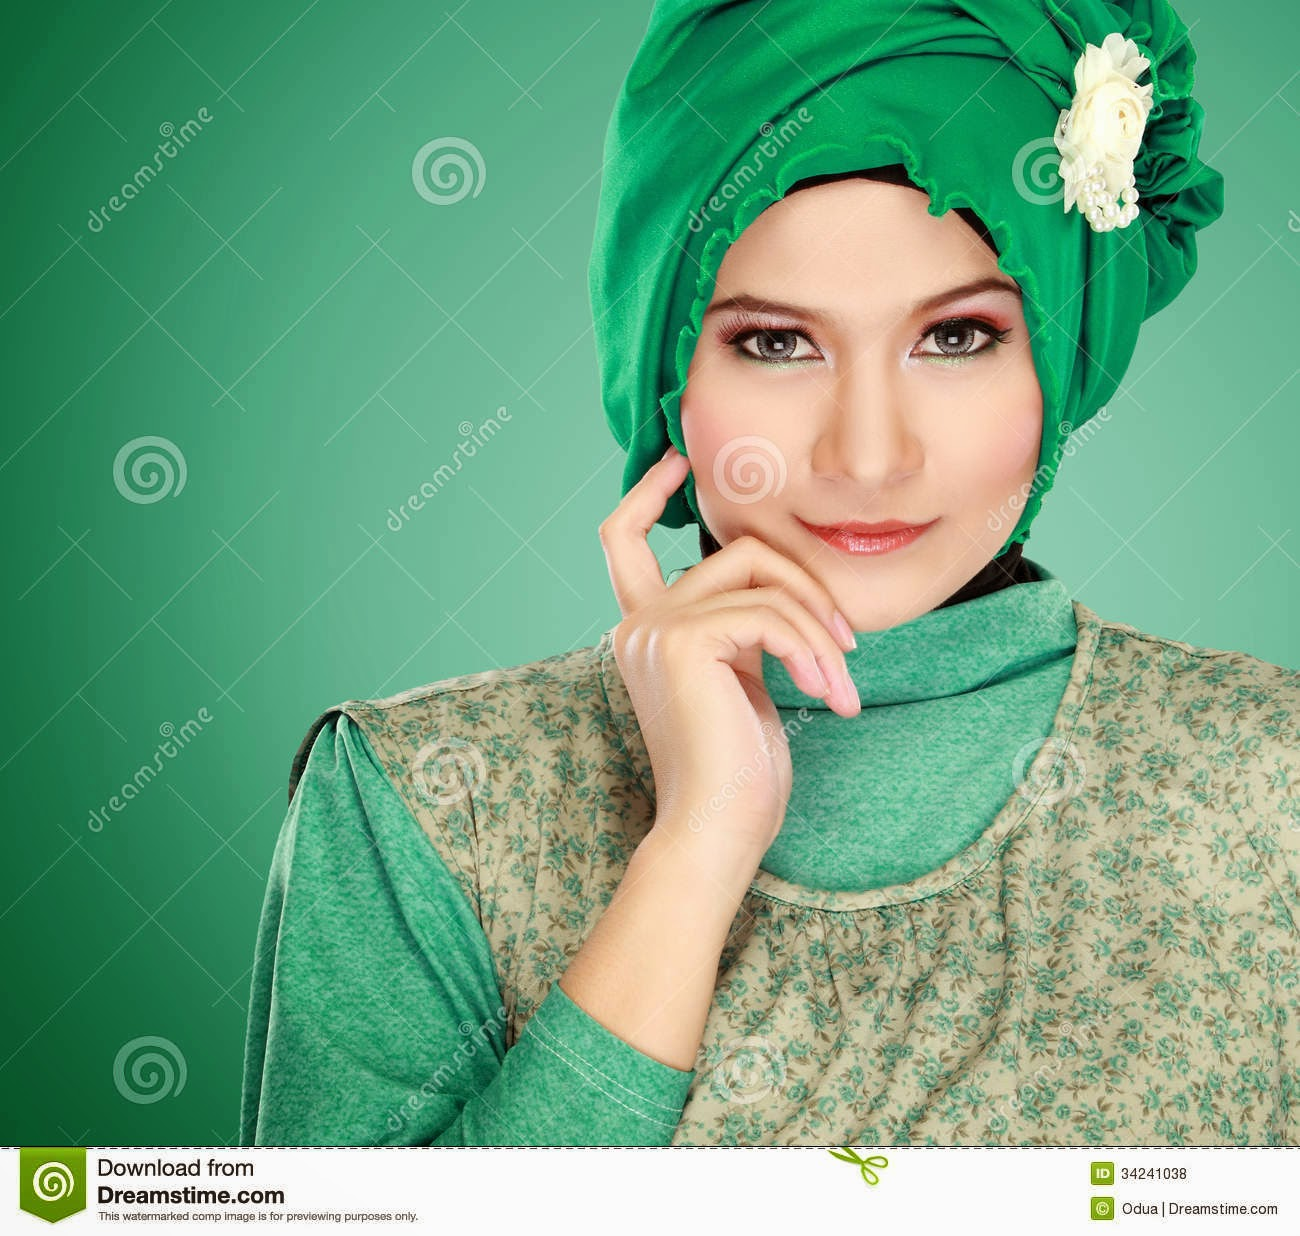 muslim single women in east jewett Free muslim matrimonial site with profiles of thousands of muslim women and muslim men start your marriage off the halal way photos are sharia compliant clothing including hijab, jilbab.